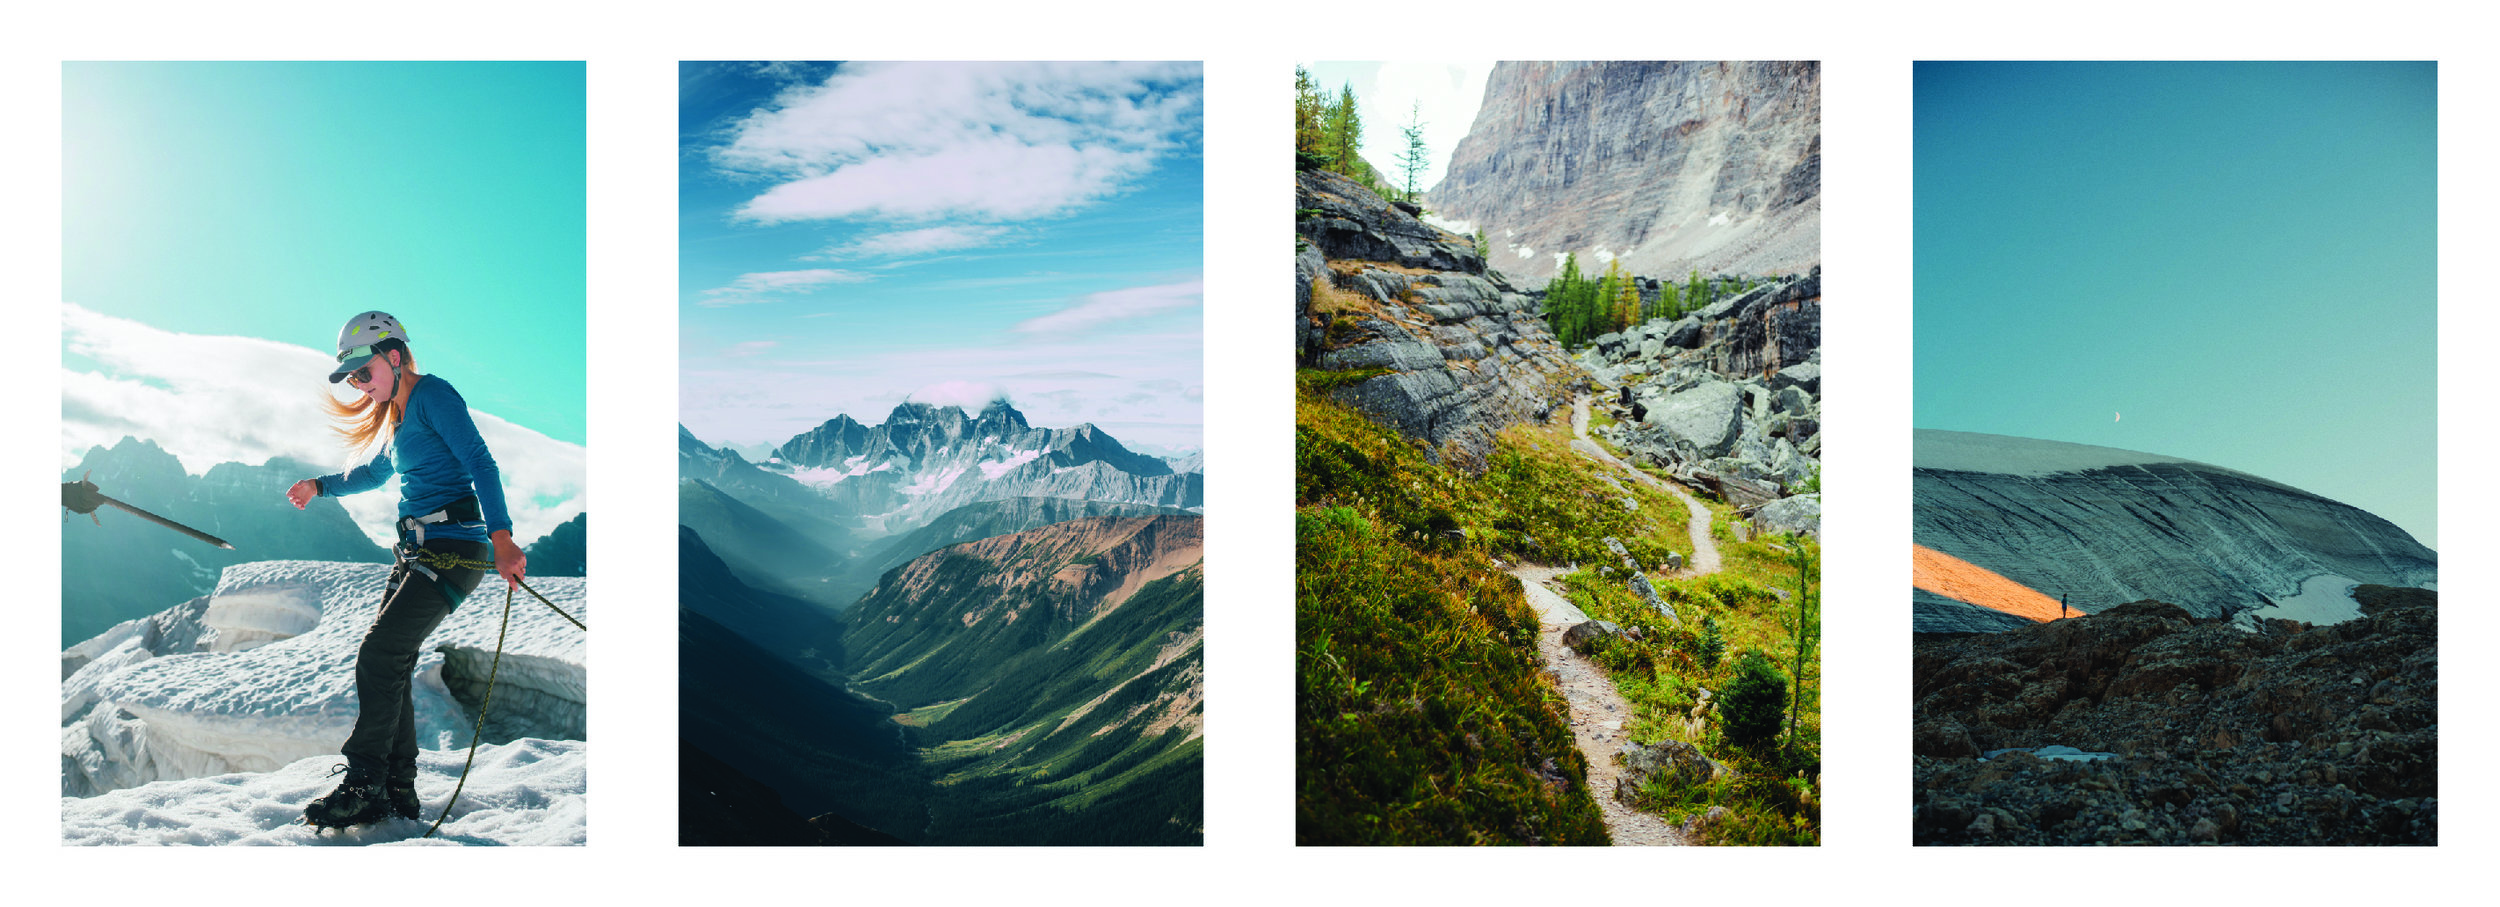 Canadian Rockies composite by Hailey